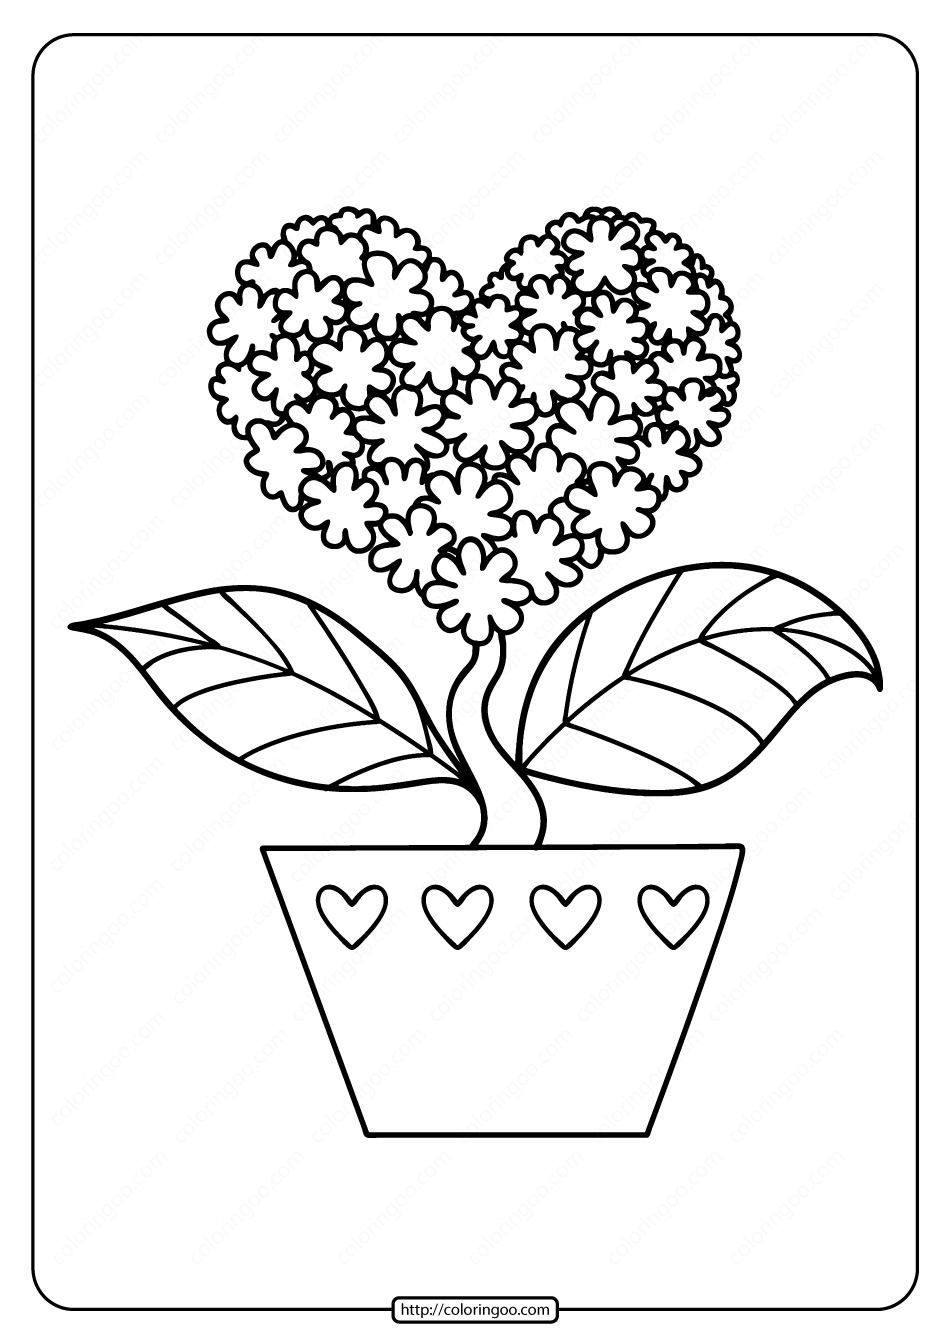 hearts printable coloring pages heart coloring pages 3 coloring pages to print hearts coloring printable pages